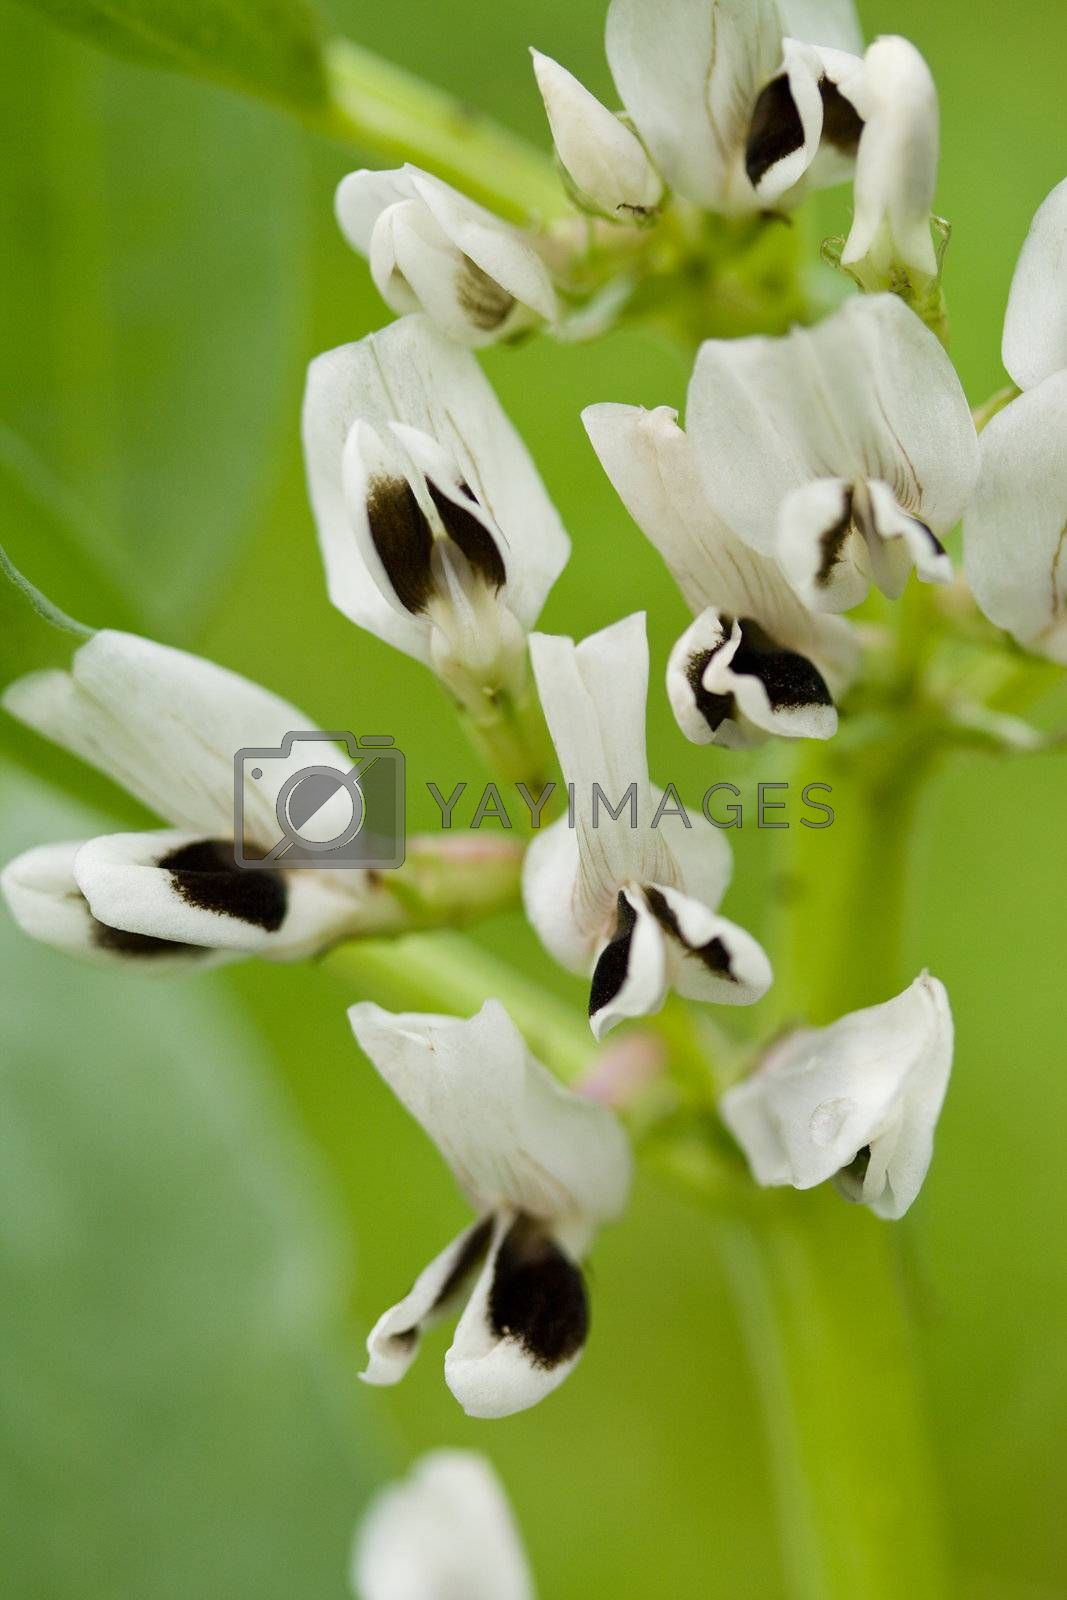 close-up white black flowers on green background